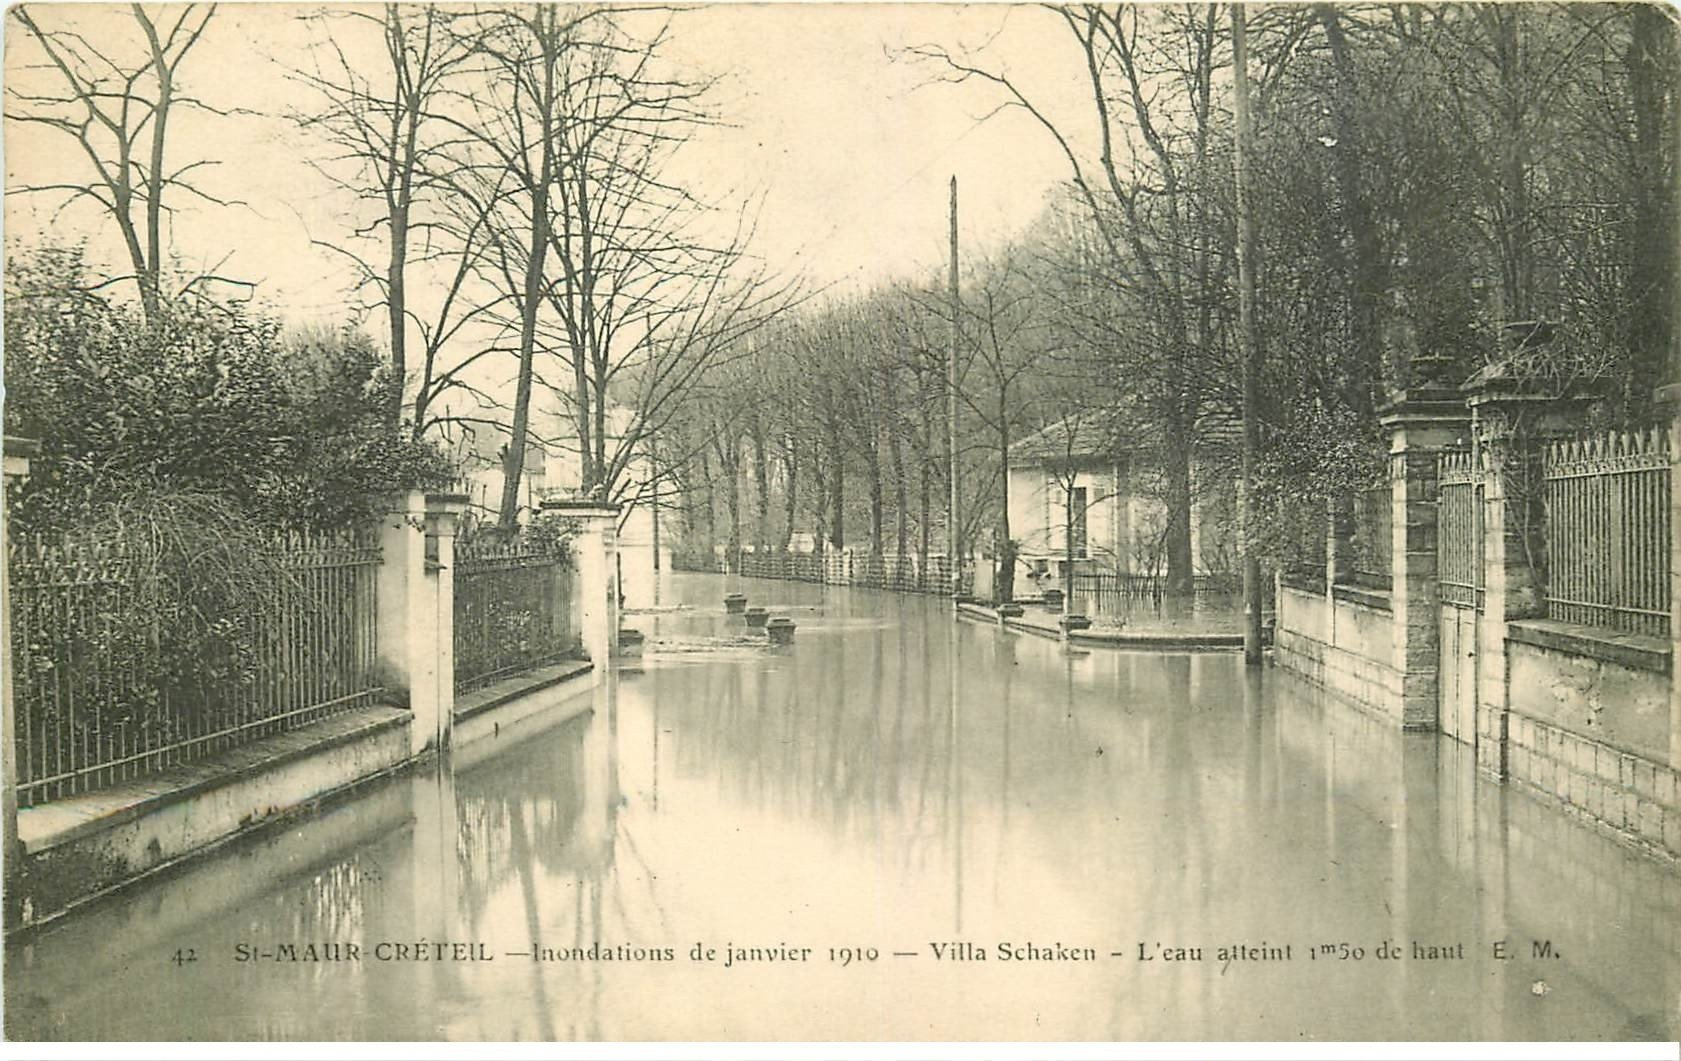 inondation et crue de 1910 saint maur creteil 94 villa schacken tampon legoy le havre. Black Bedroom Furniture Sets. Home Design Ideas